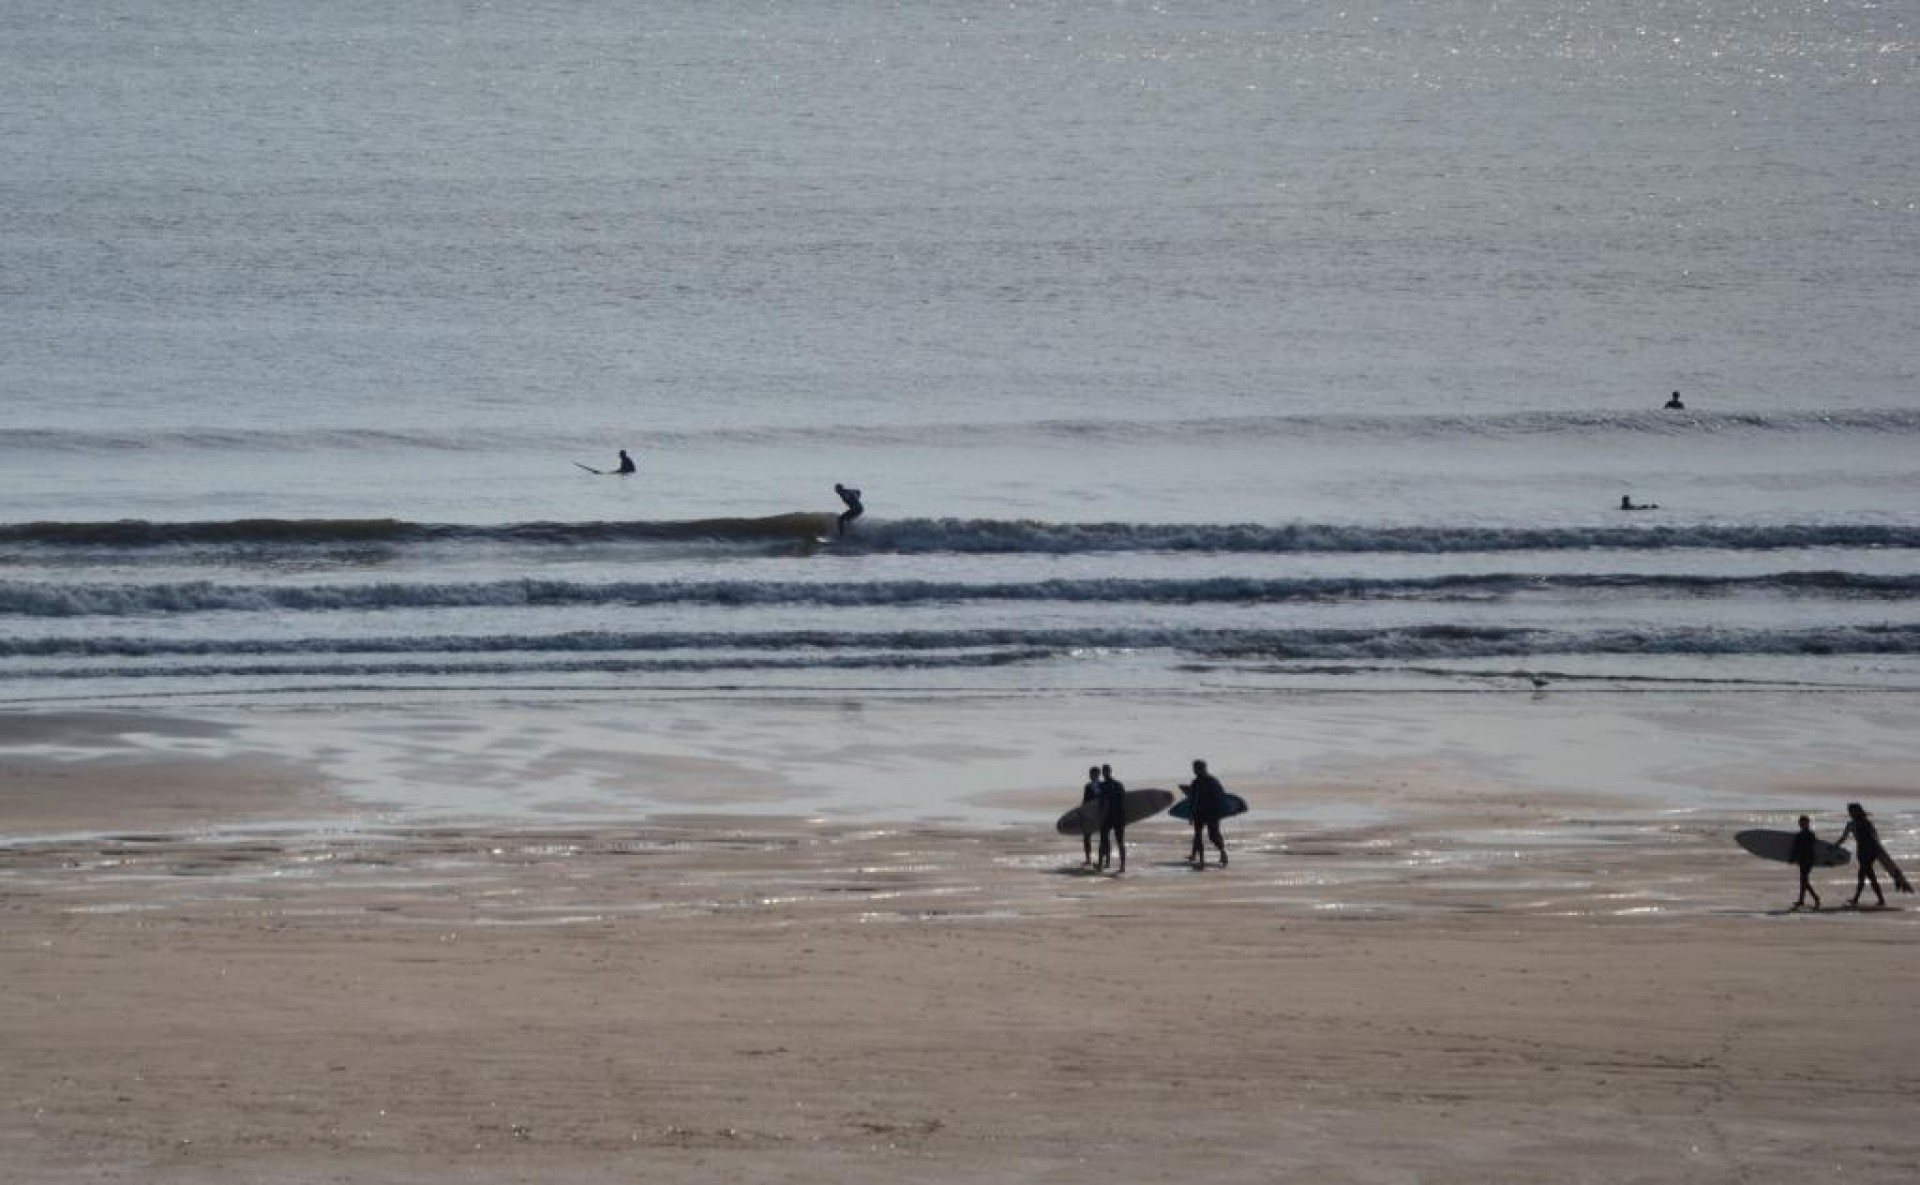 user293667's photo of Llangennith / Rhossili